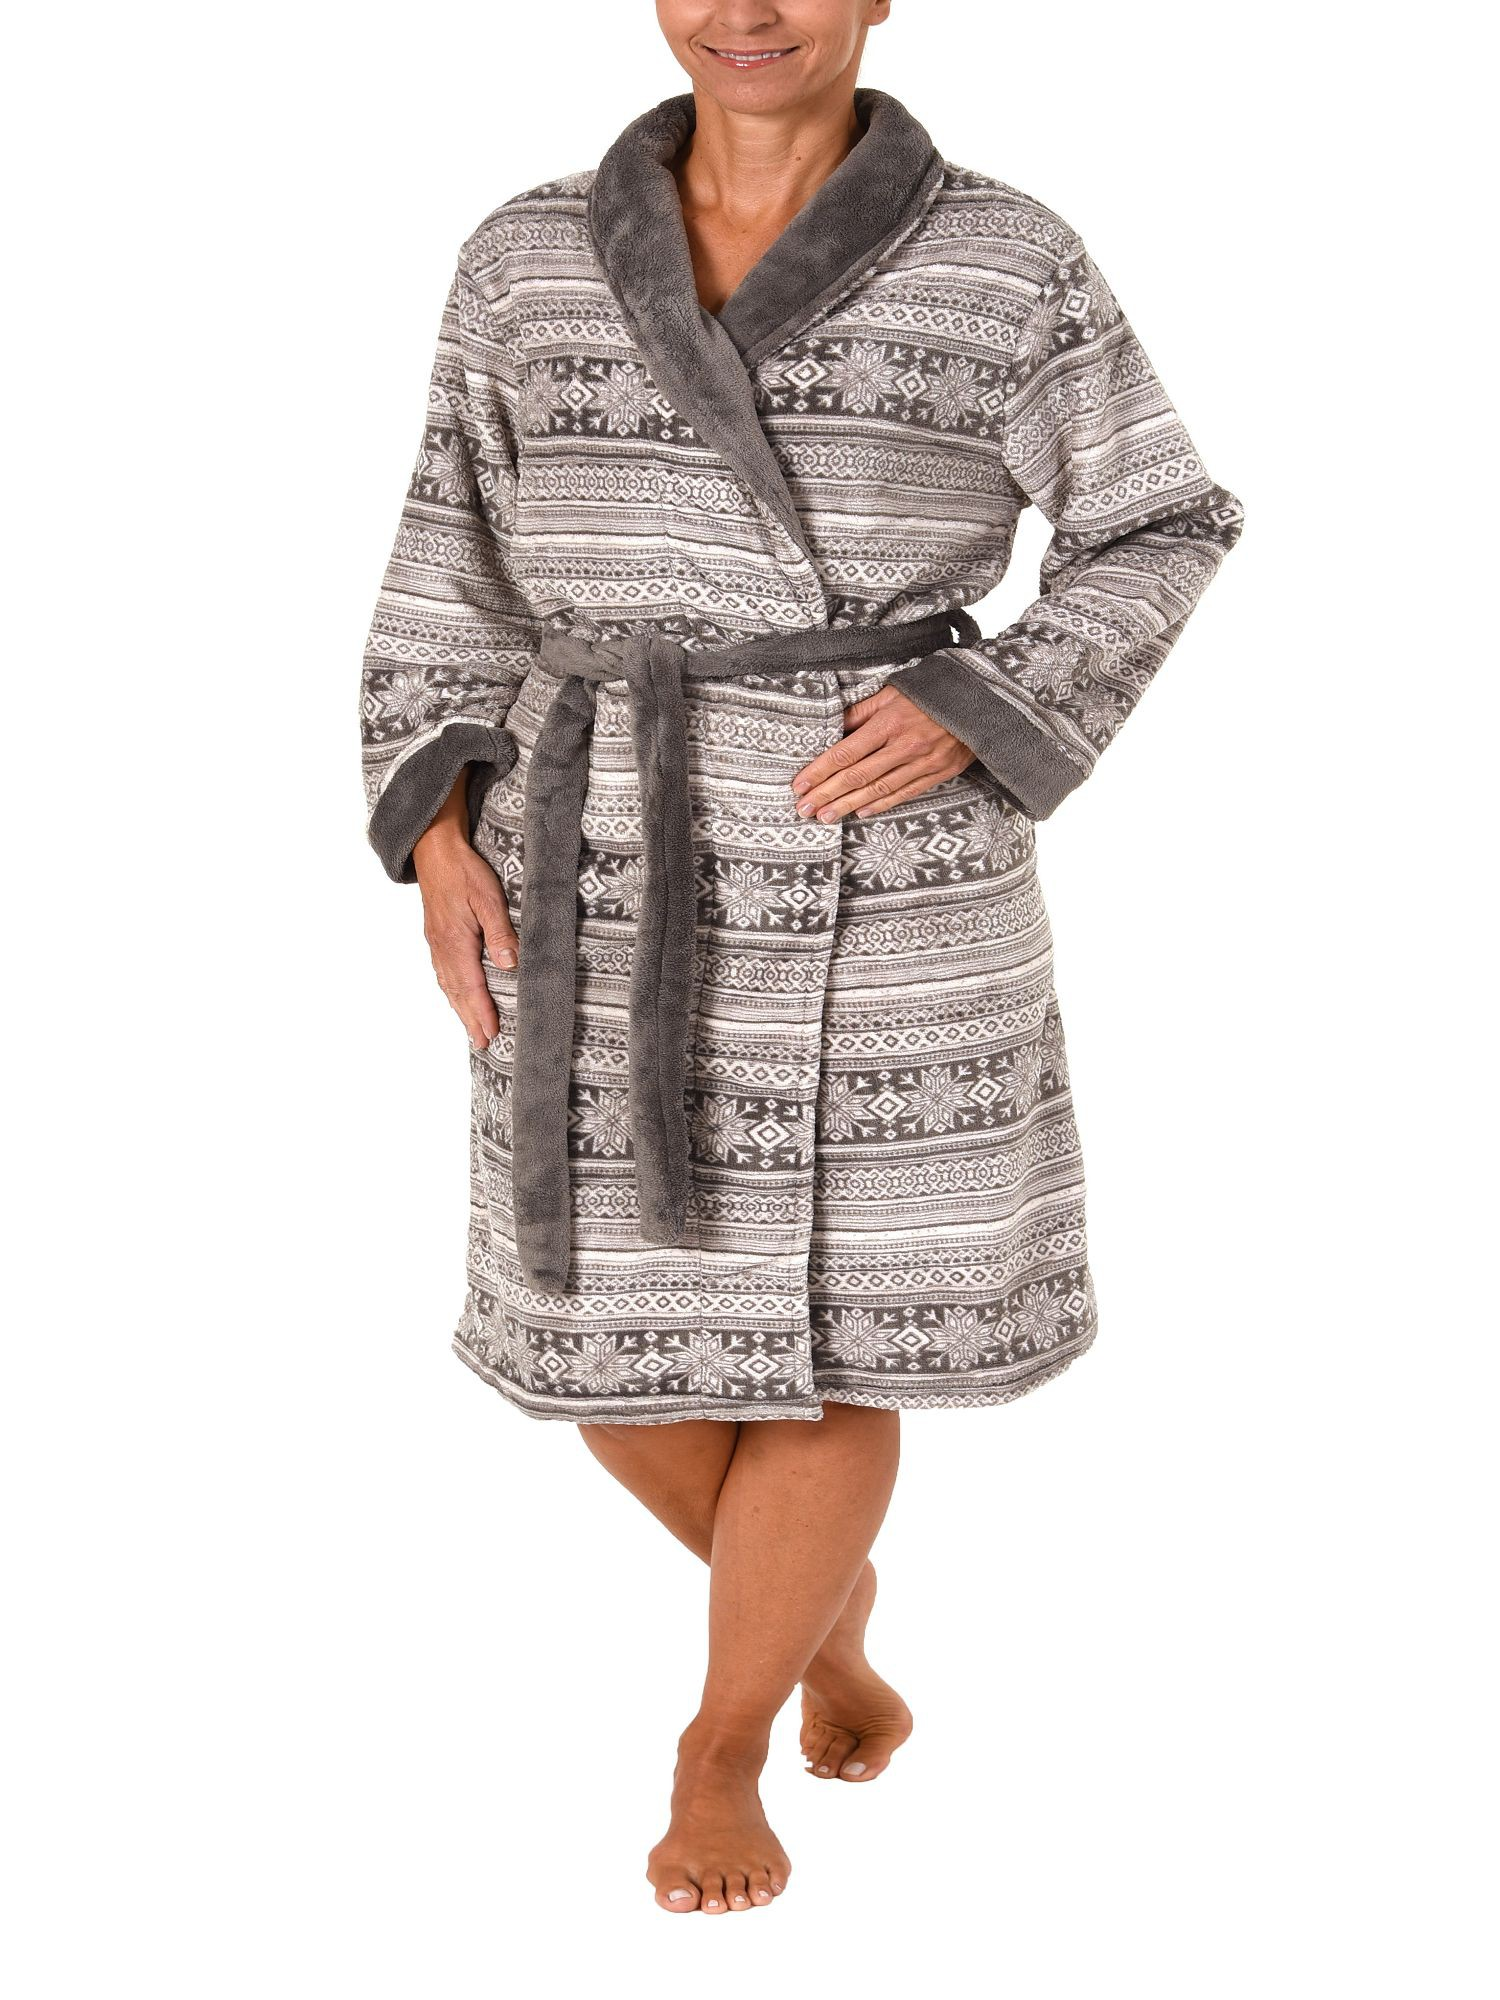 Damen Morgenmantel Corallfleece Bademantel in Norweger-Muster-Optik – 271 218 97 003 – Bild 2